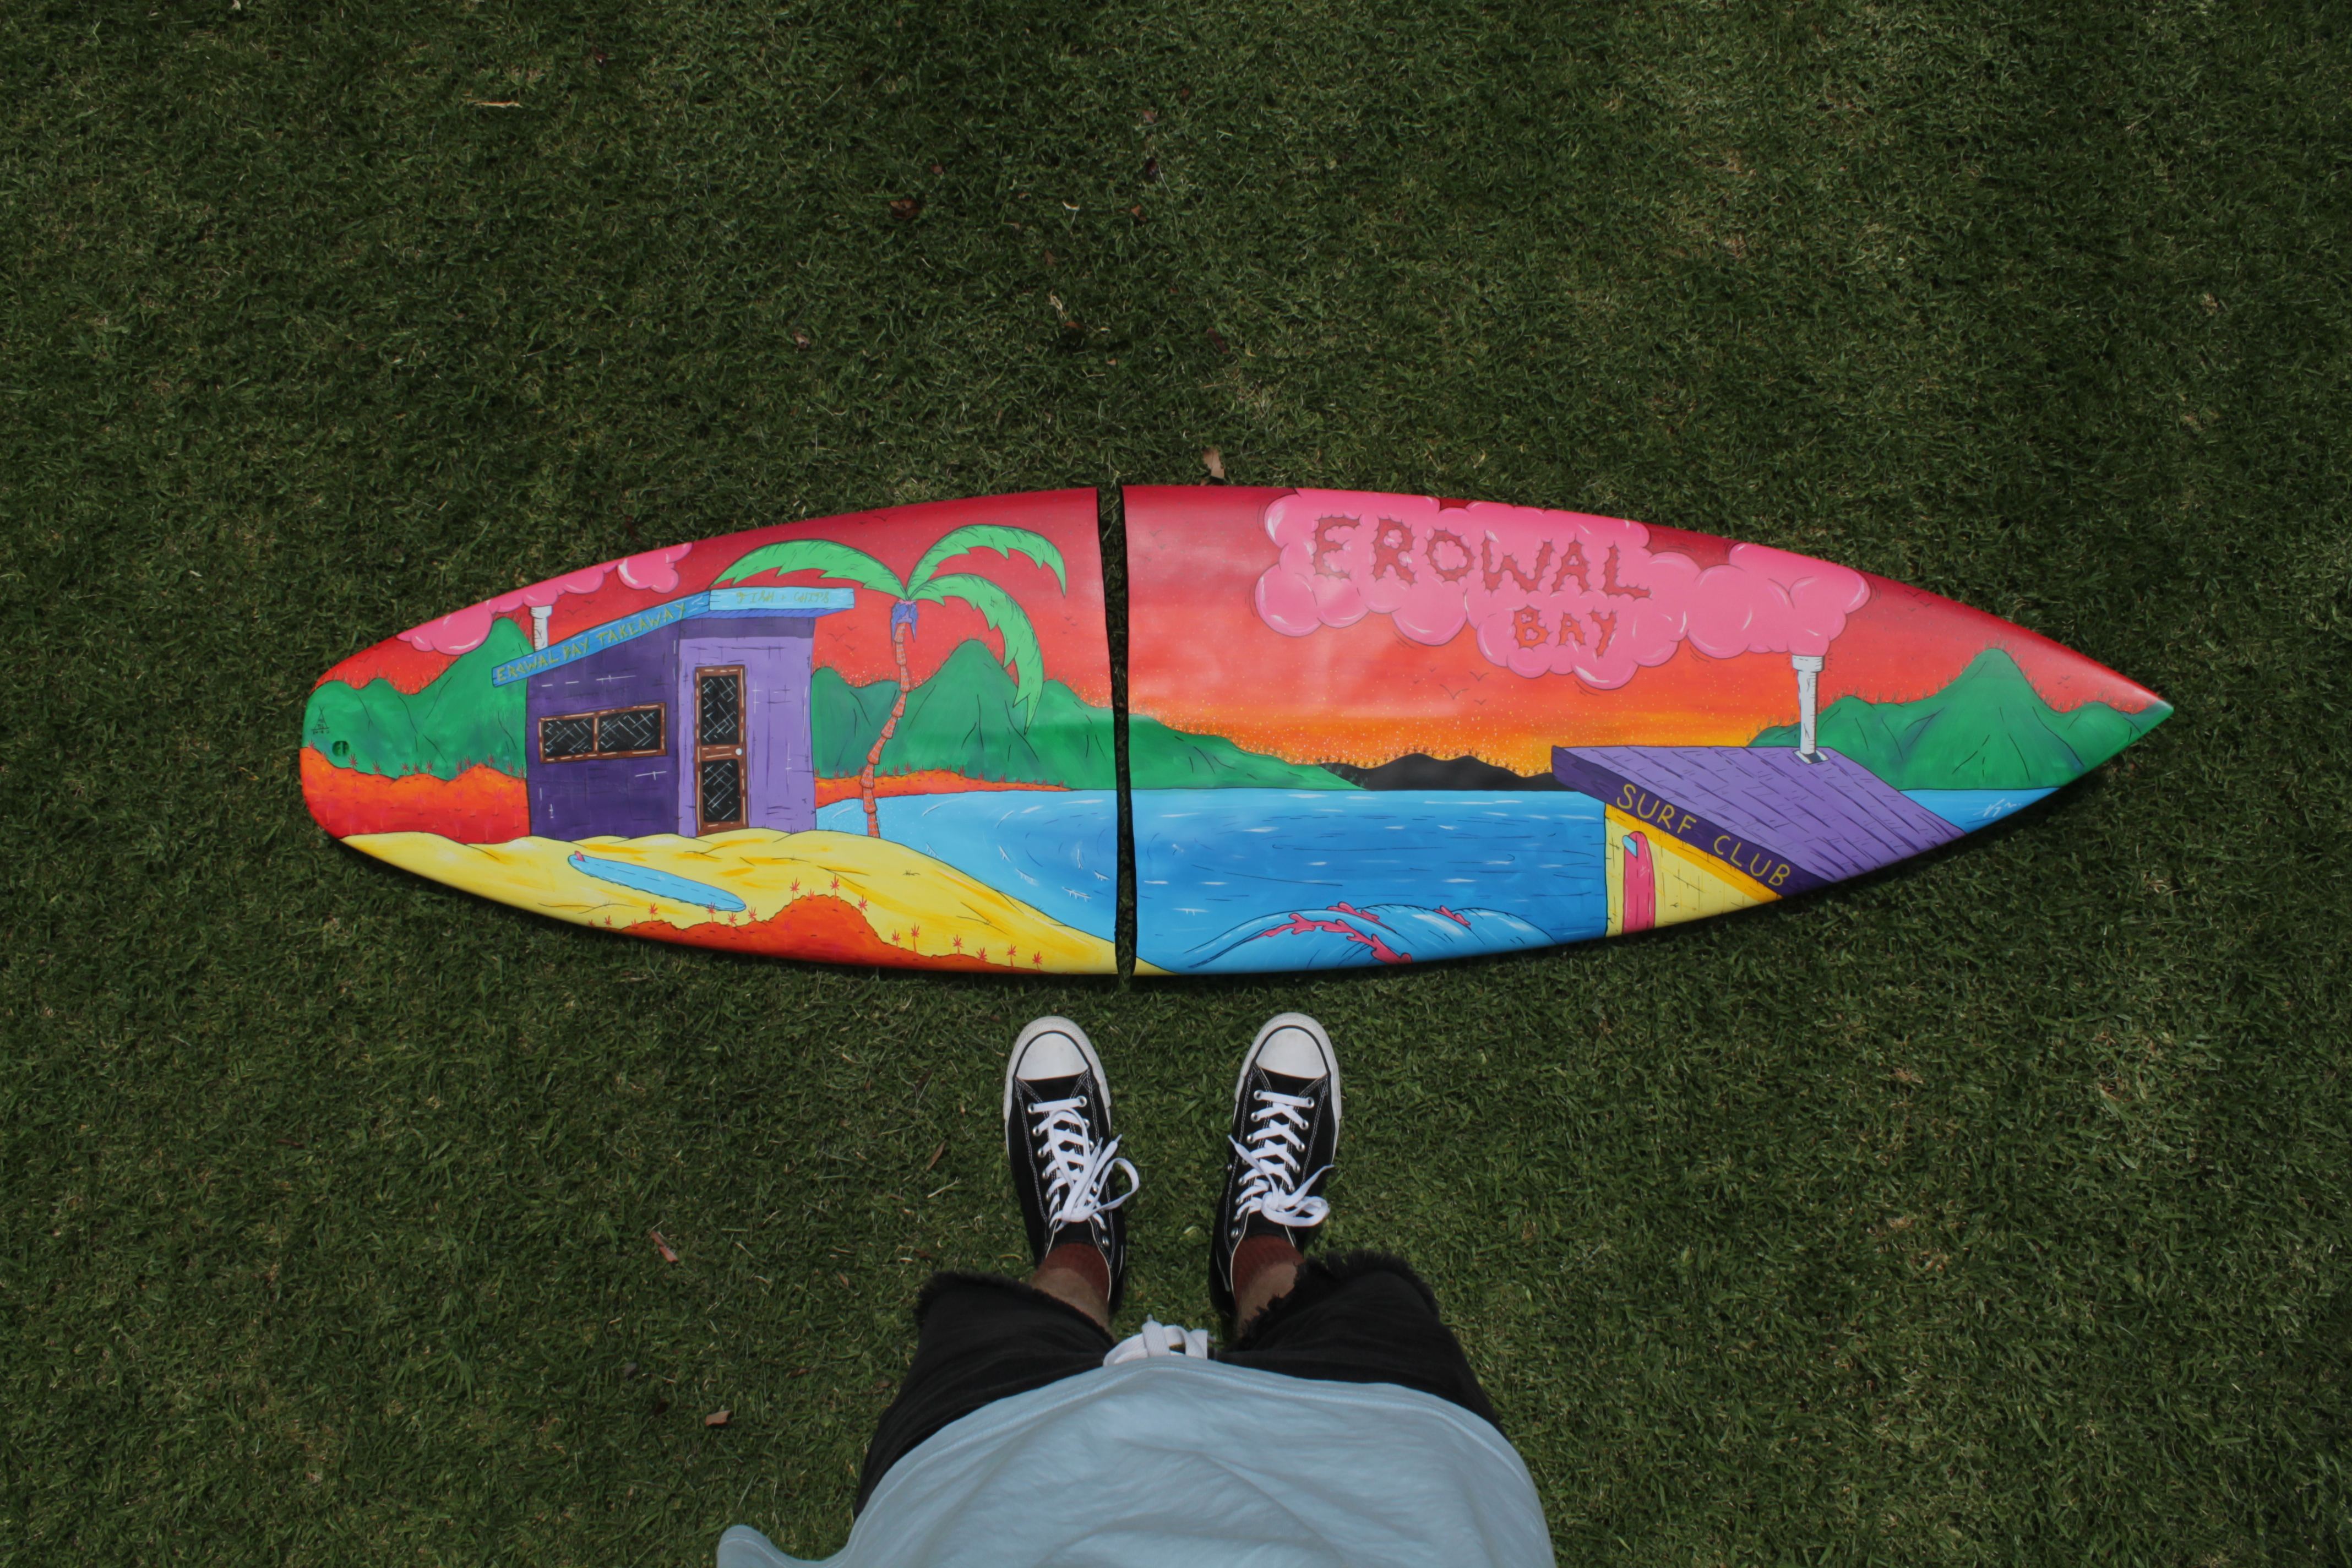 Erowal Bay Surfboard